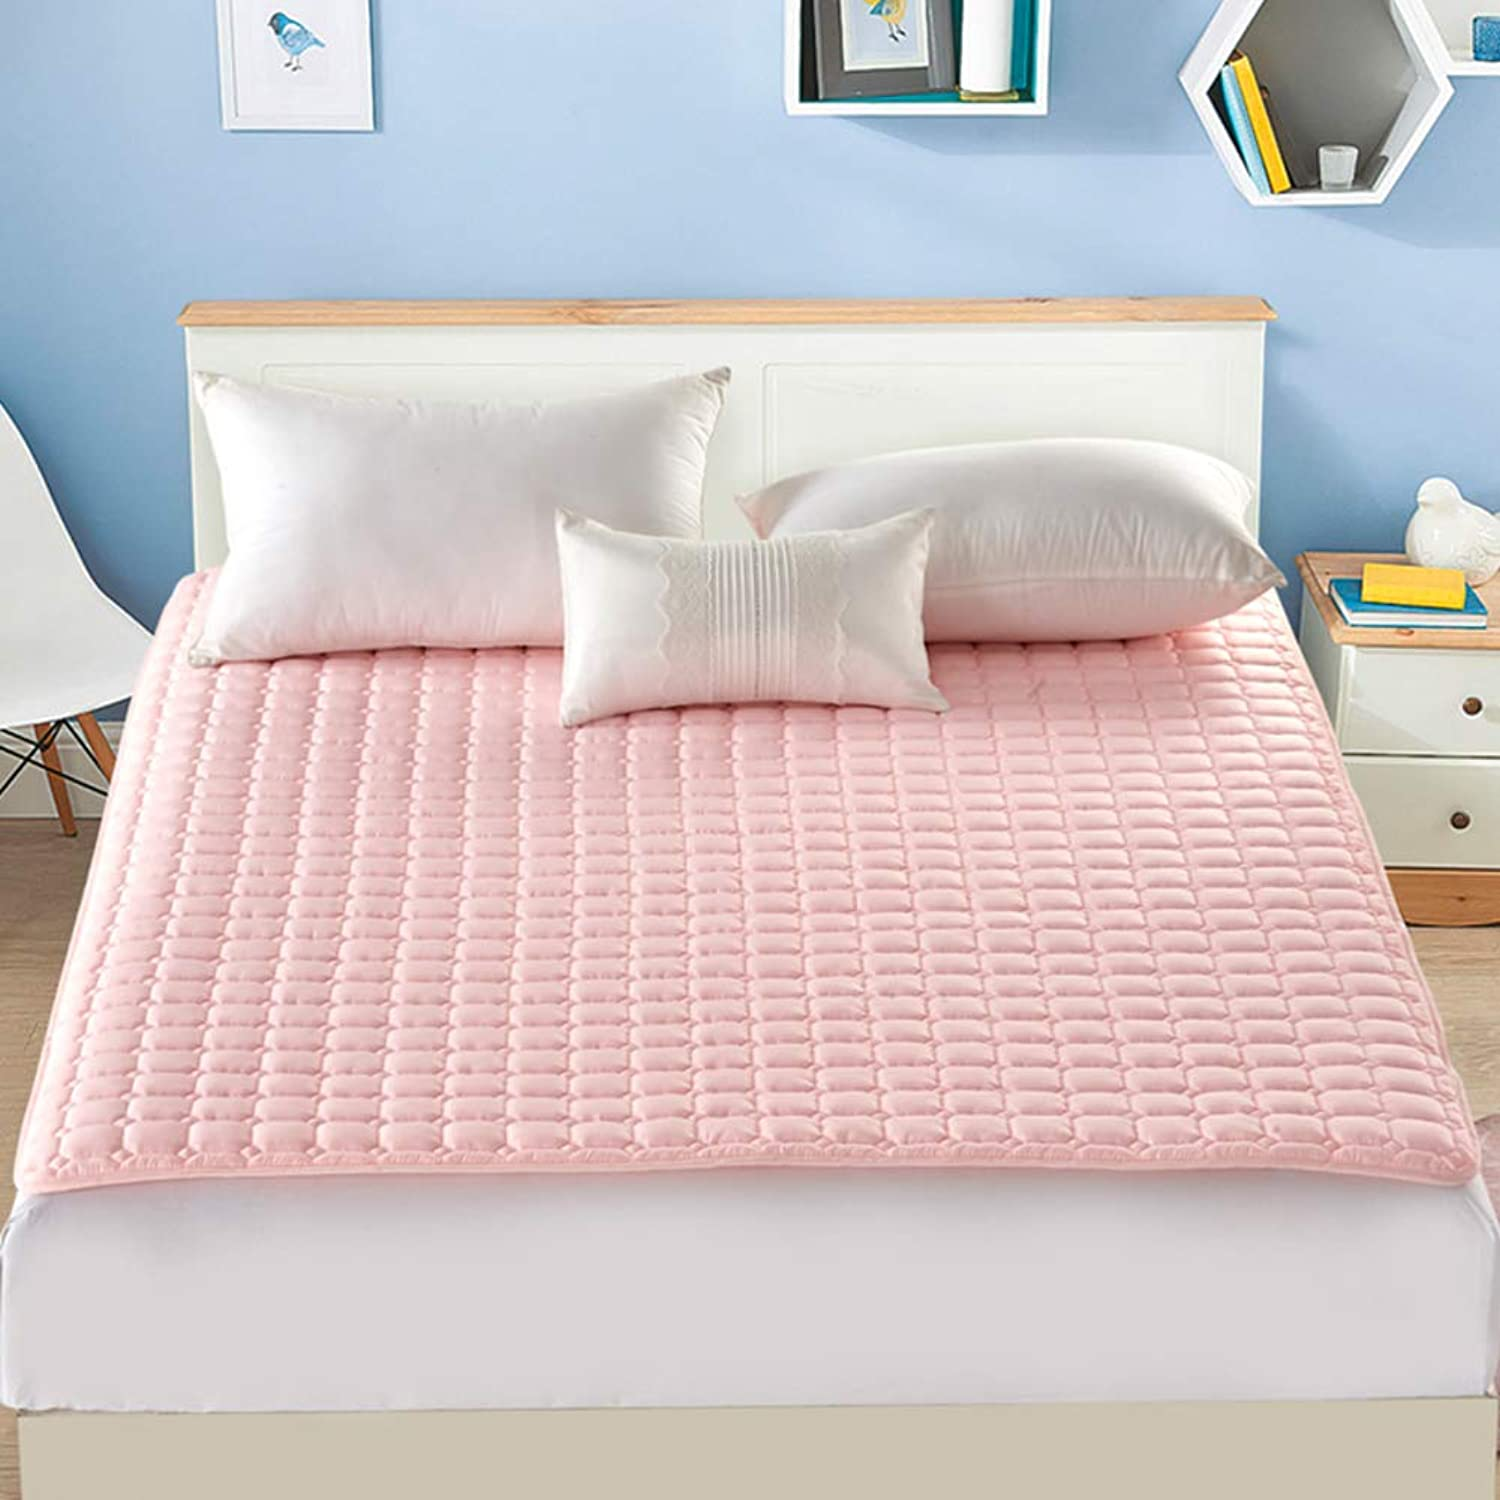 Non-Slip Tatami Mattress,Foldable Mattress Pads,Solid color Hotel Thin Soft Breathable Four Seasons Washable Sleeping pad-Pink 180x200cm(71x79inch)